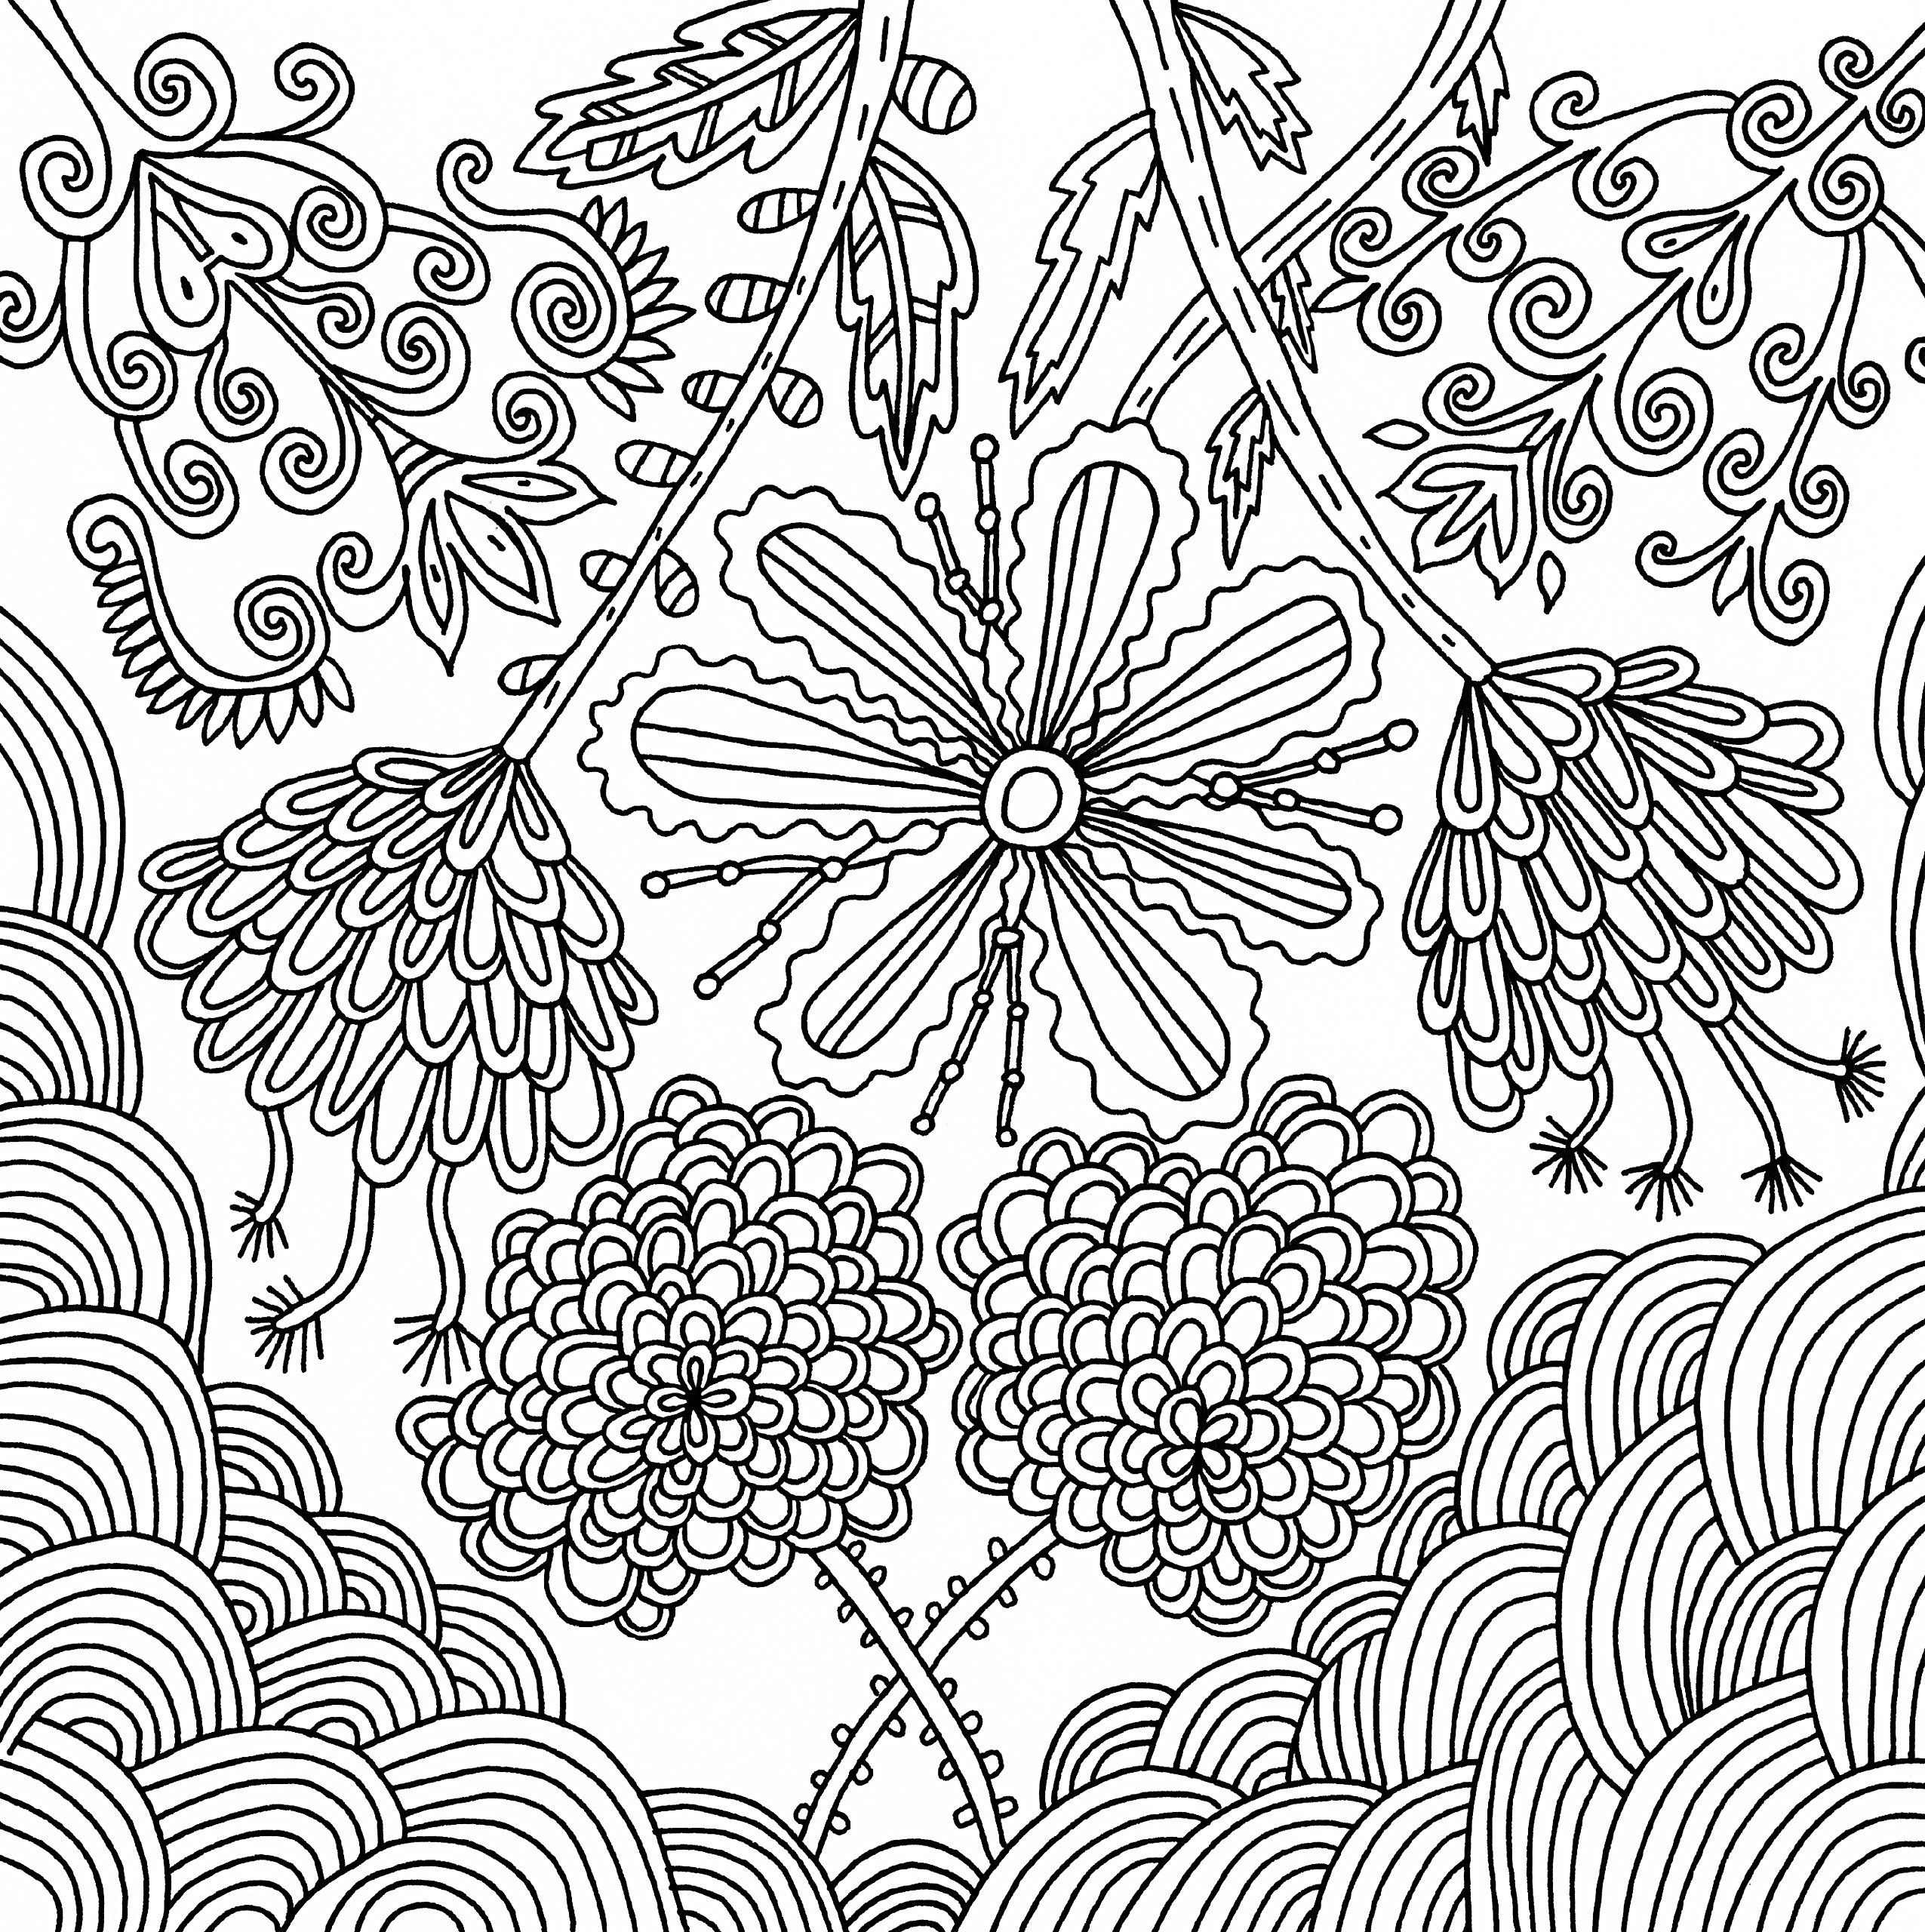 serenity coloring book 31 stress relieving designs